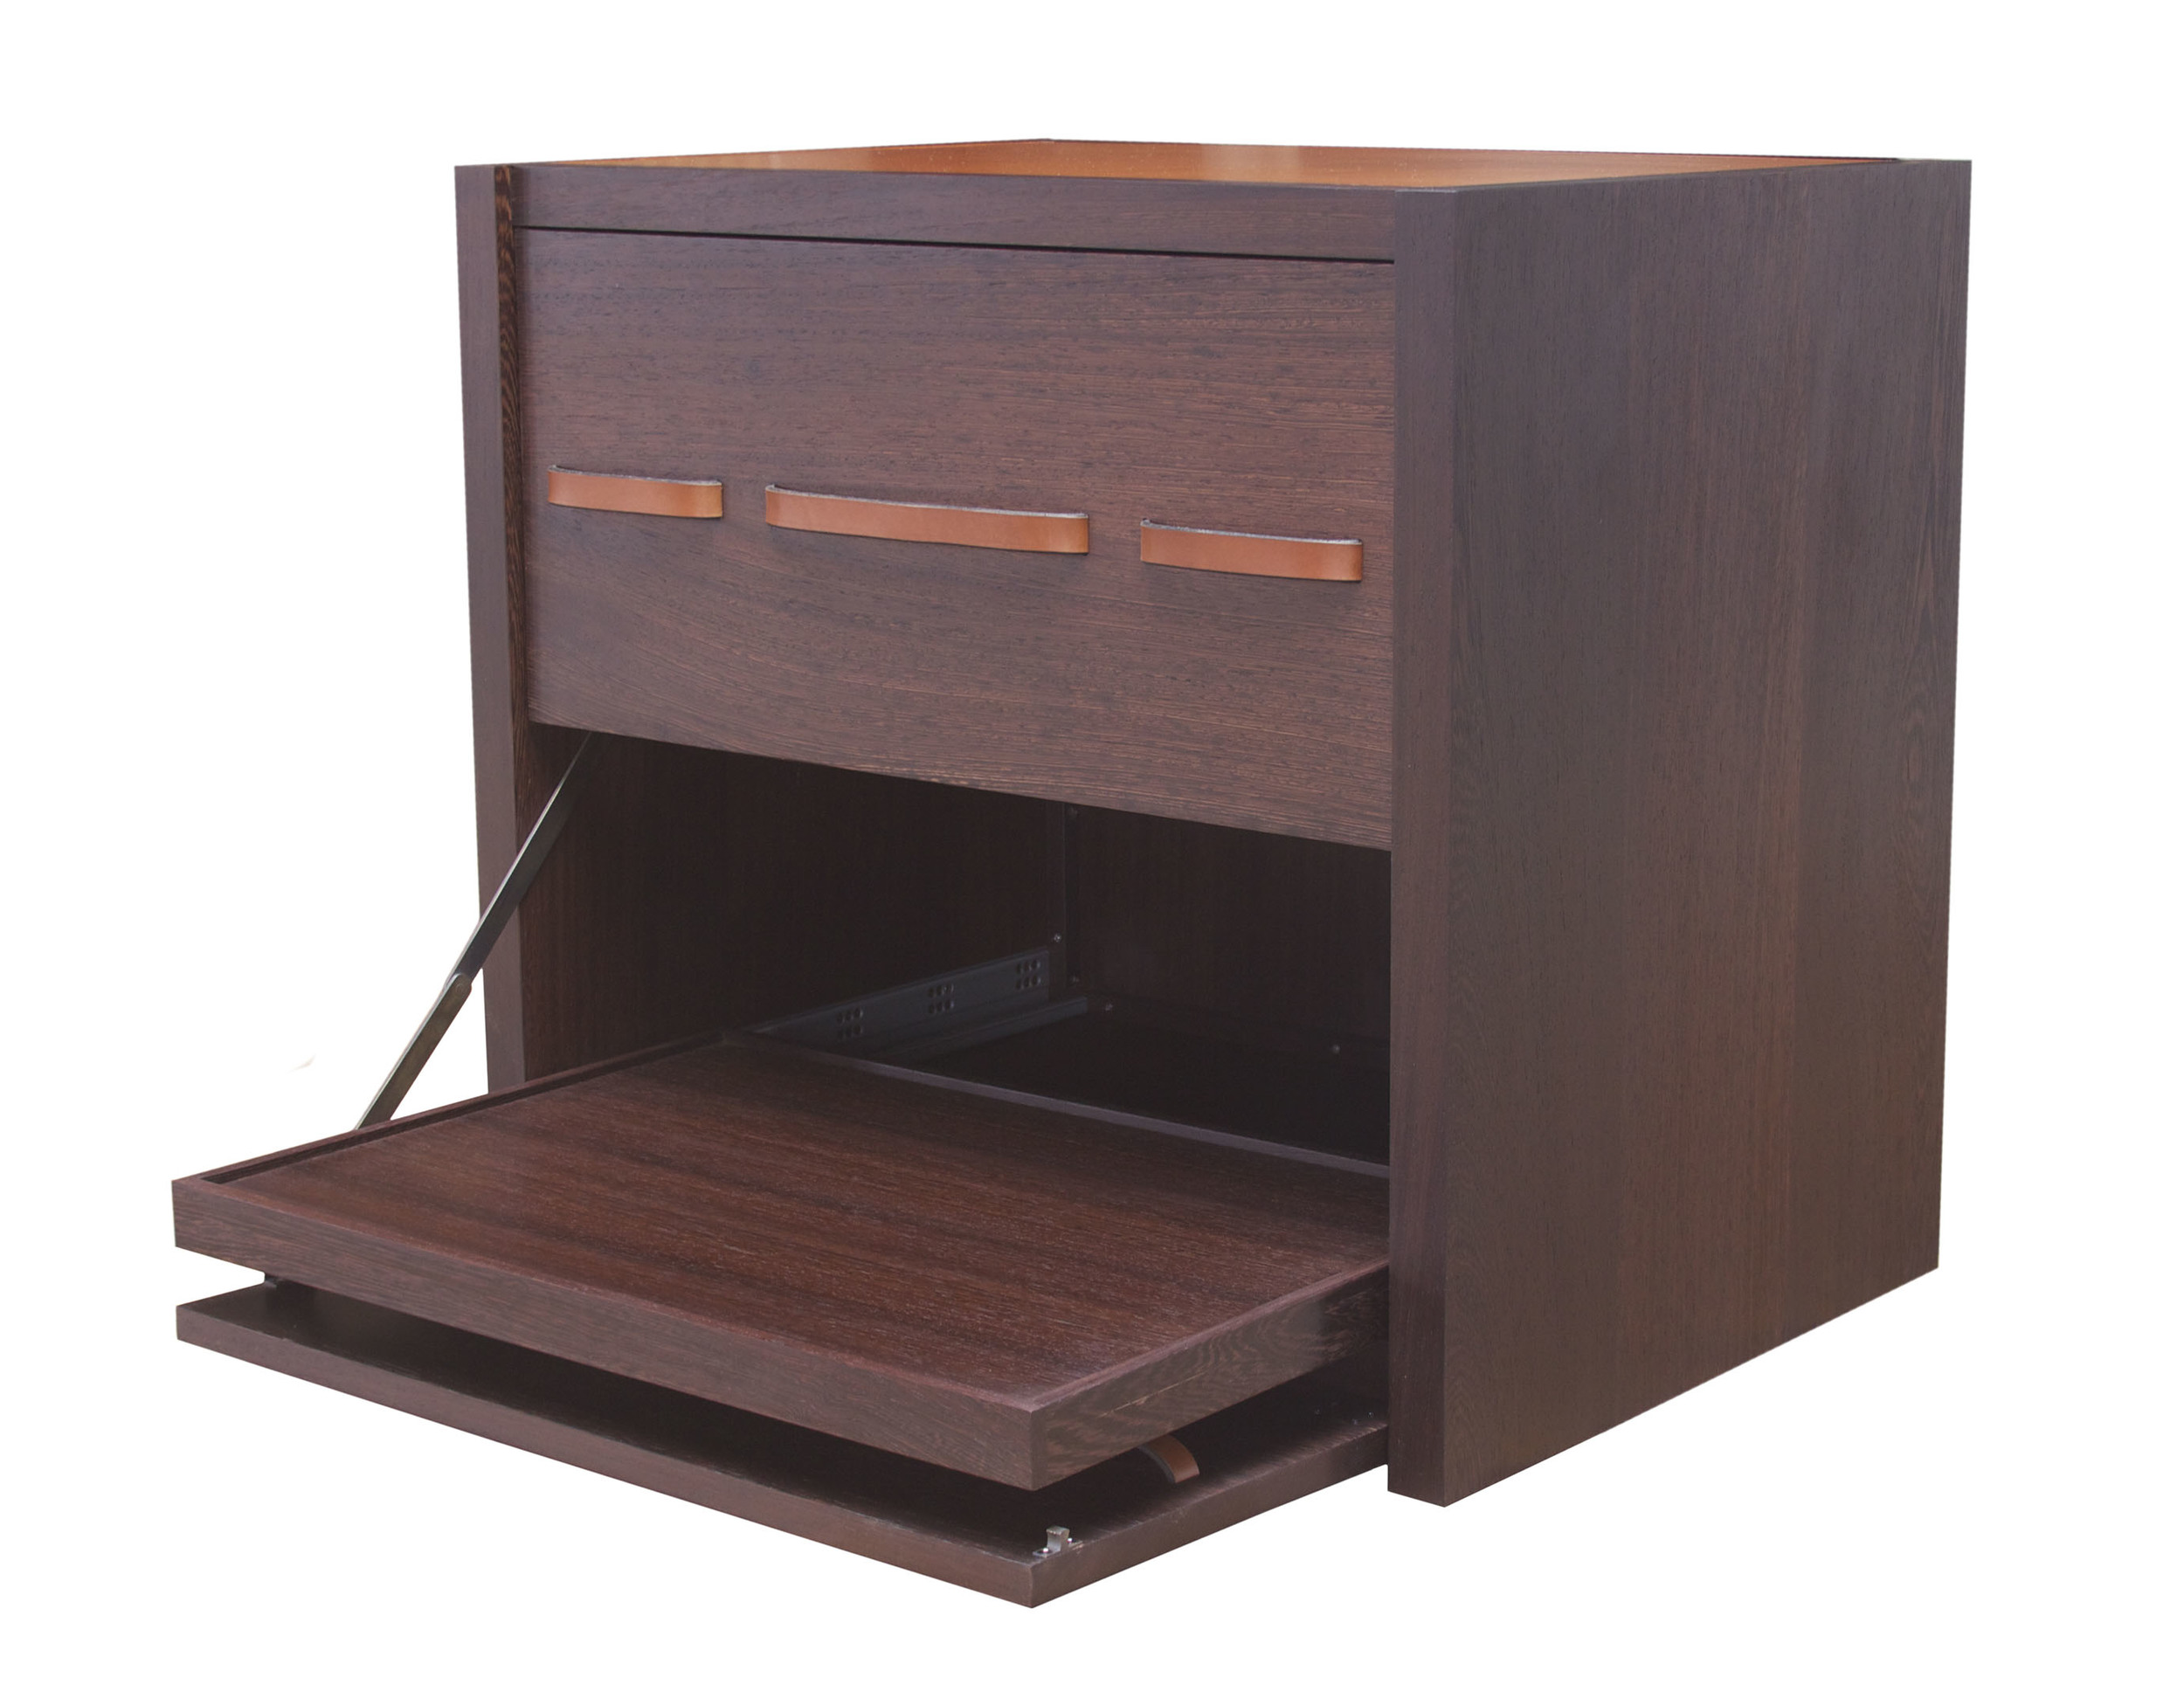 Seagram Side Table in wenge - oiled